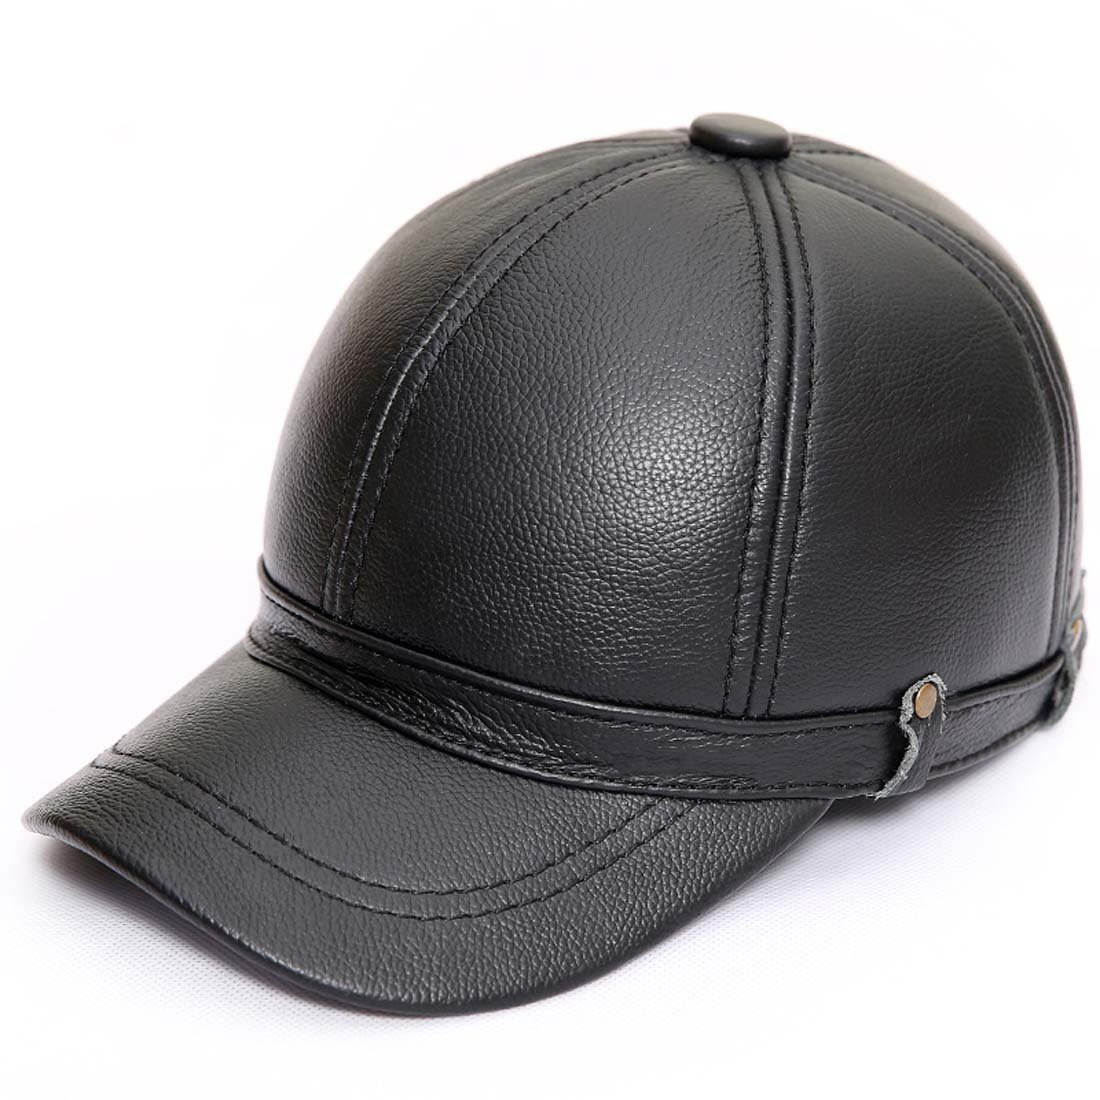 16a1cdb1d86 acdiac Men s Genuine Cowhide Leather Adjustable Baseball Caps Ball Cap  (black) at Amazon Men s Clothing store